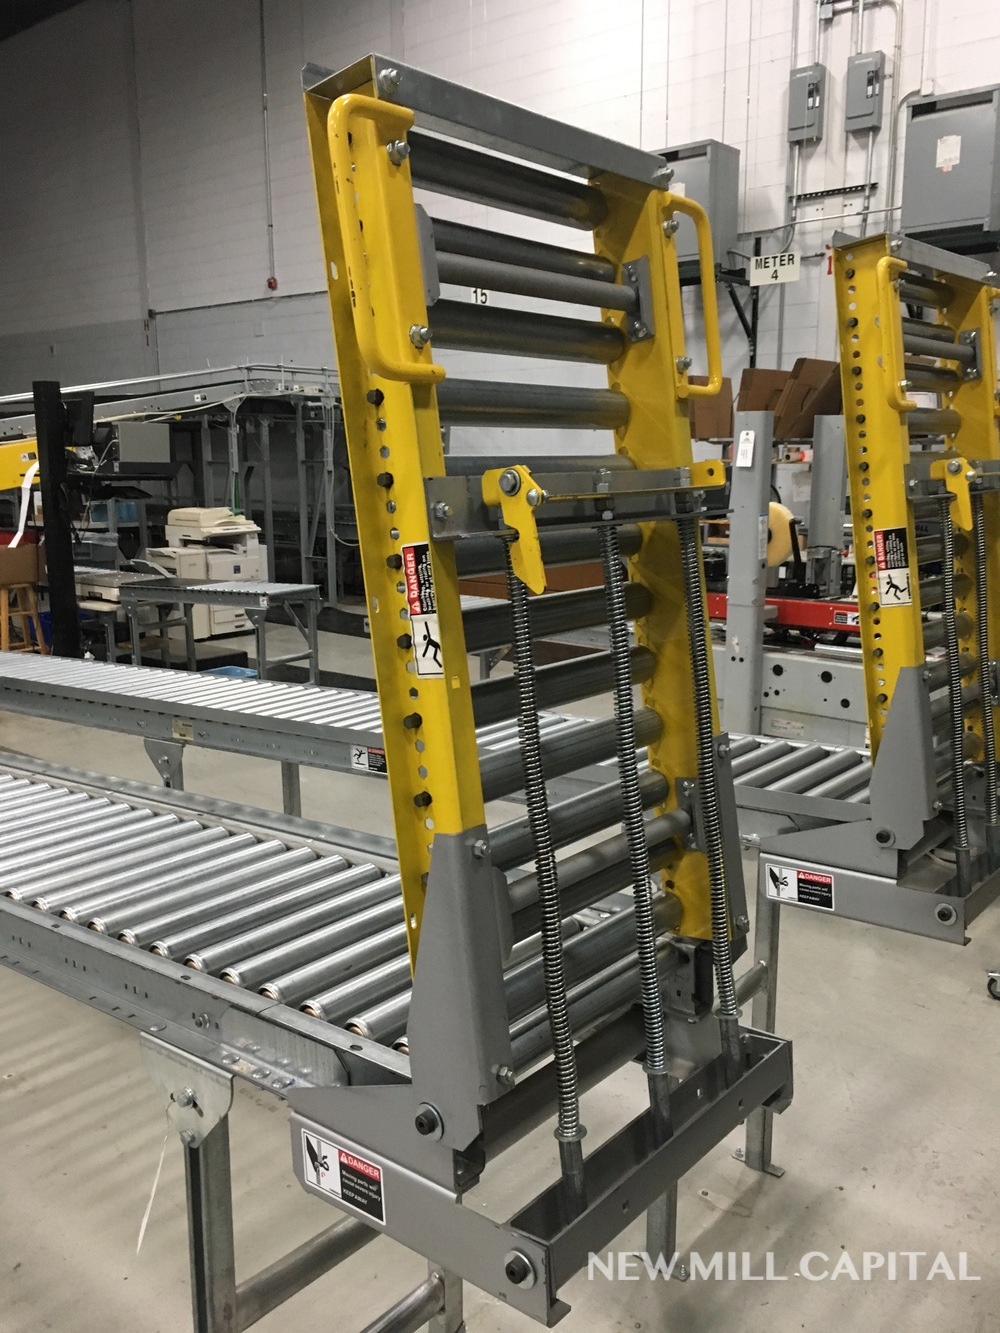 Lot 60 - Spring Assisted Roller Conveyor & Gate, Approx 20ft OA Length, 15in Wide Rol | Rig Fee: $150